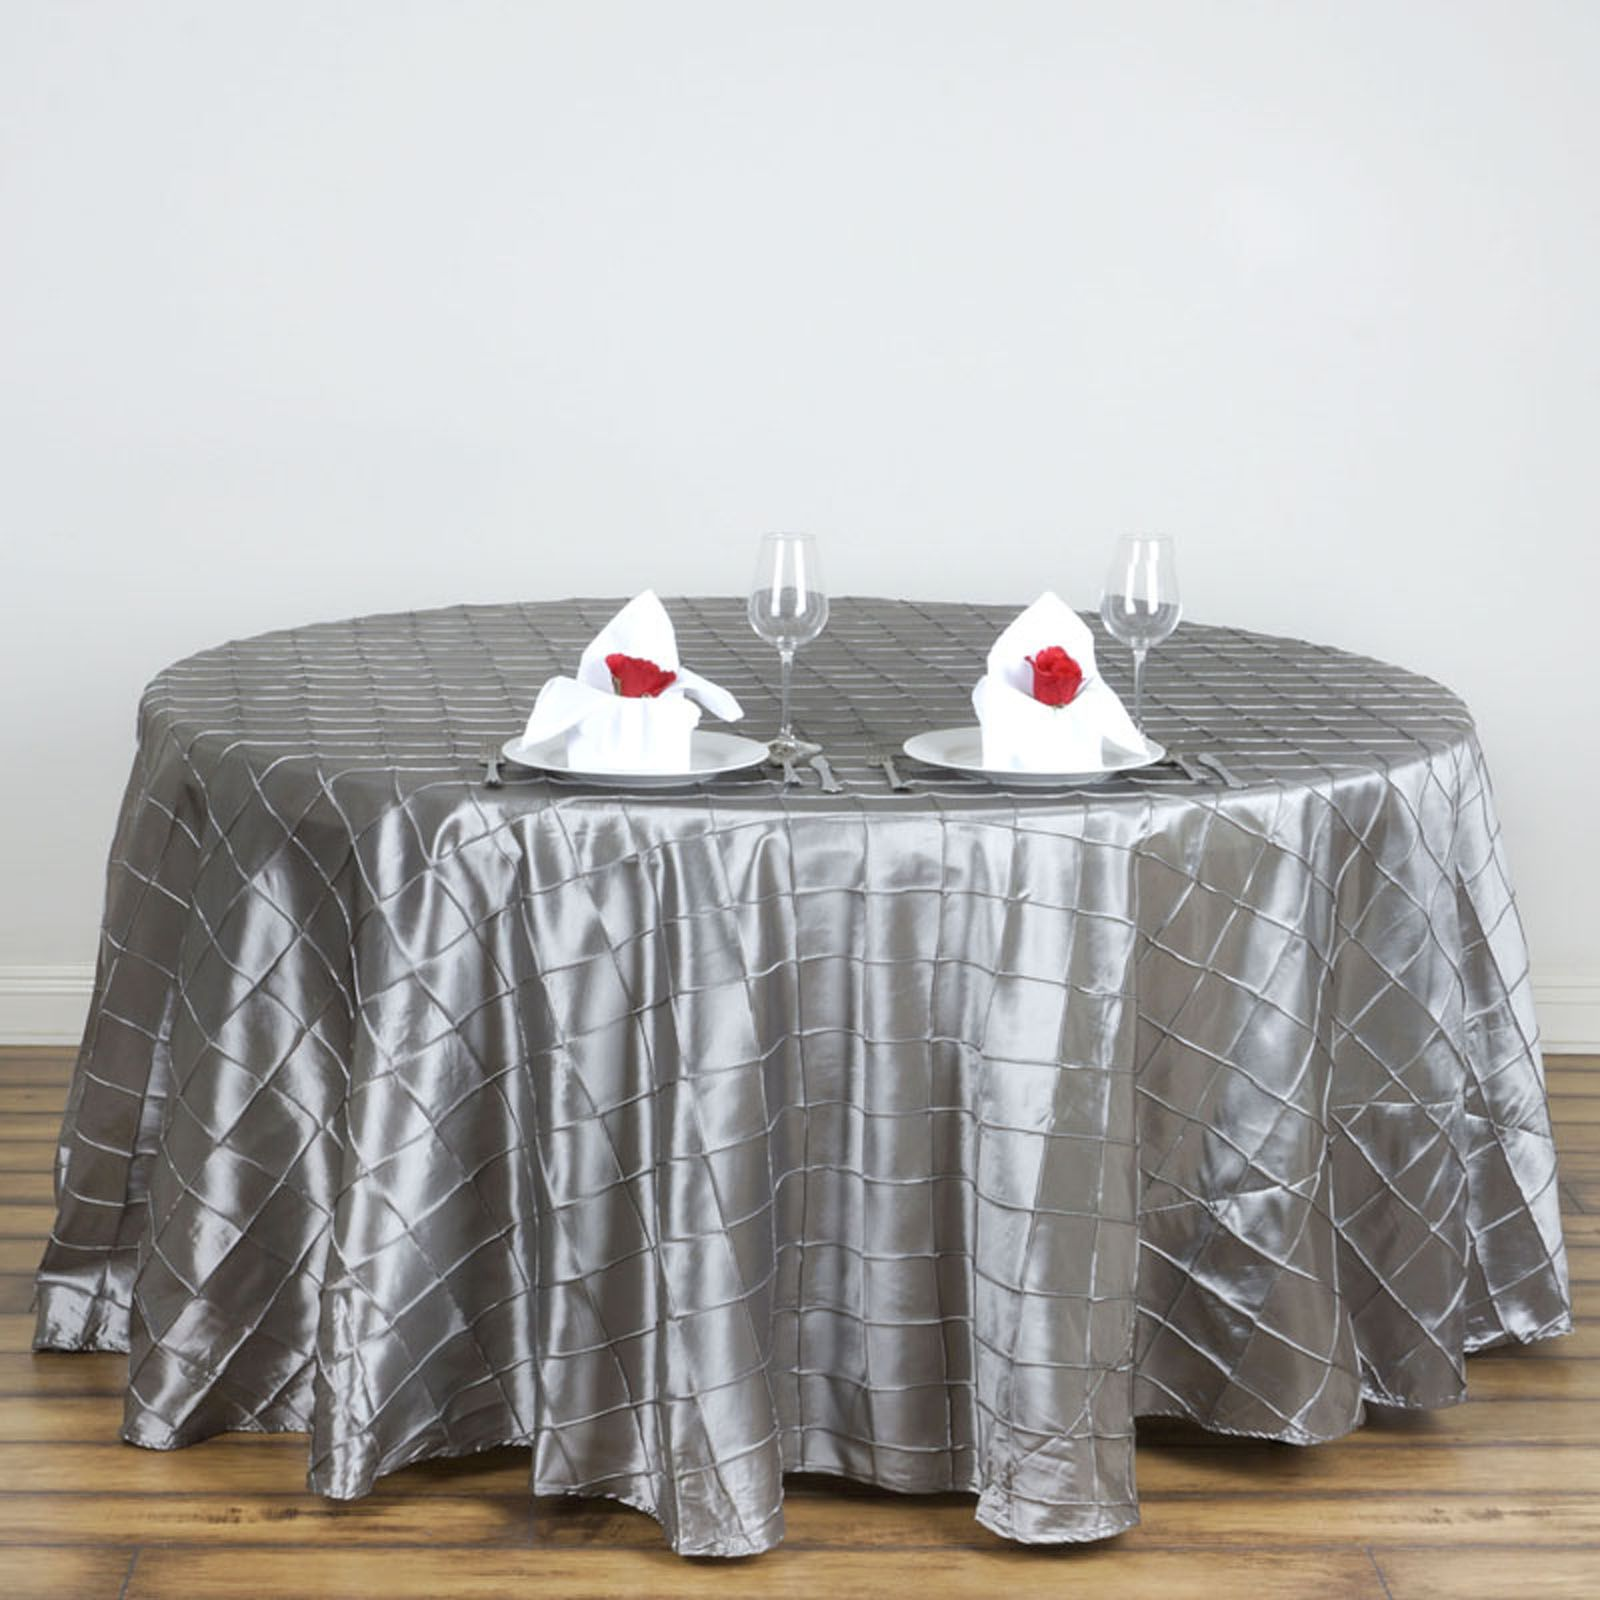 Captivating 120 Pintuck Fancy Round Tablecloths Linens Wedding Party